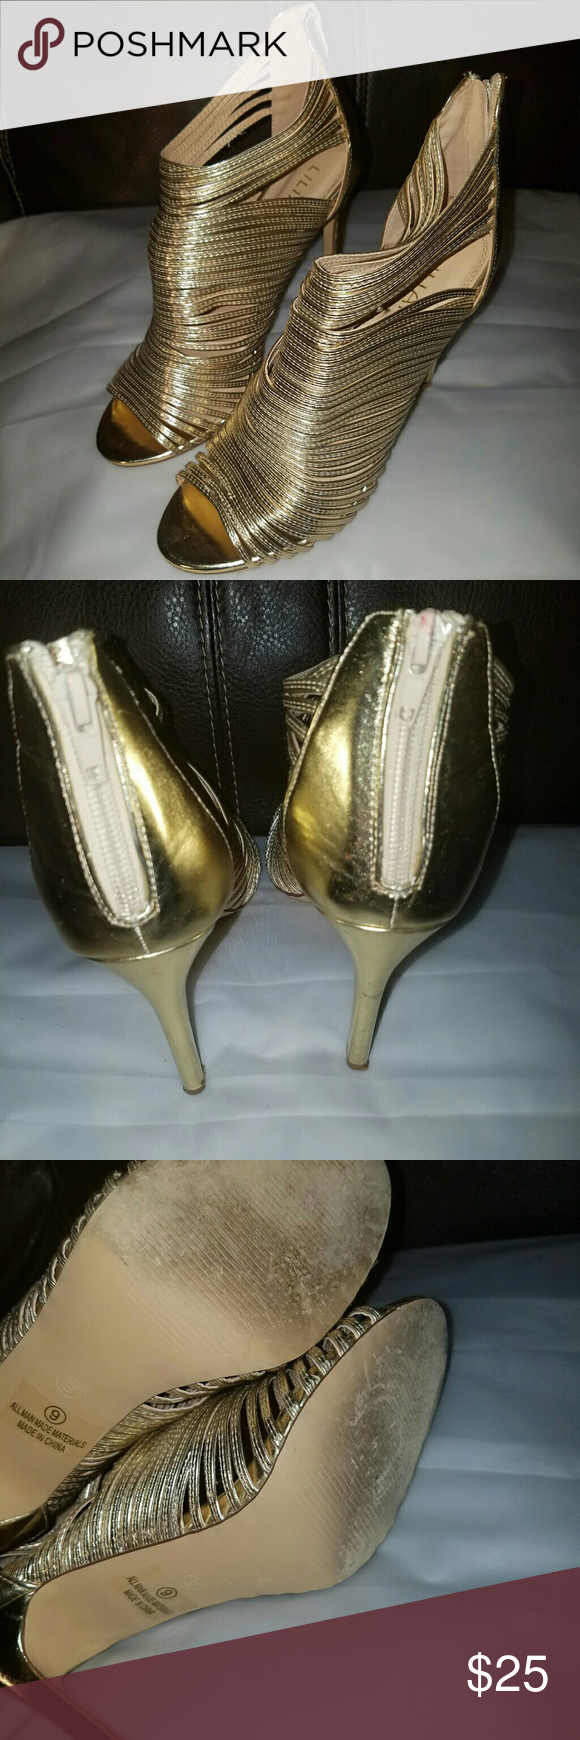 Liliana heels Womens liliana heels with zipper back good condition used No Box as is Liliana Shoes Heels